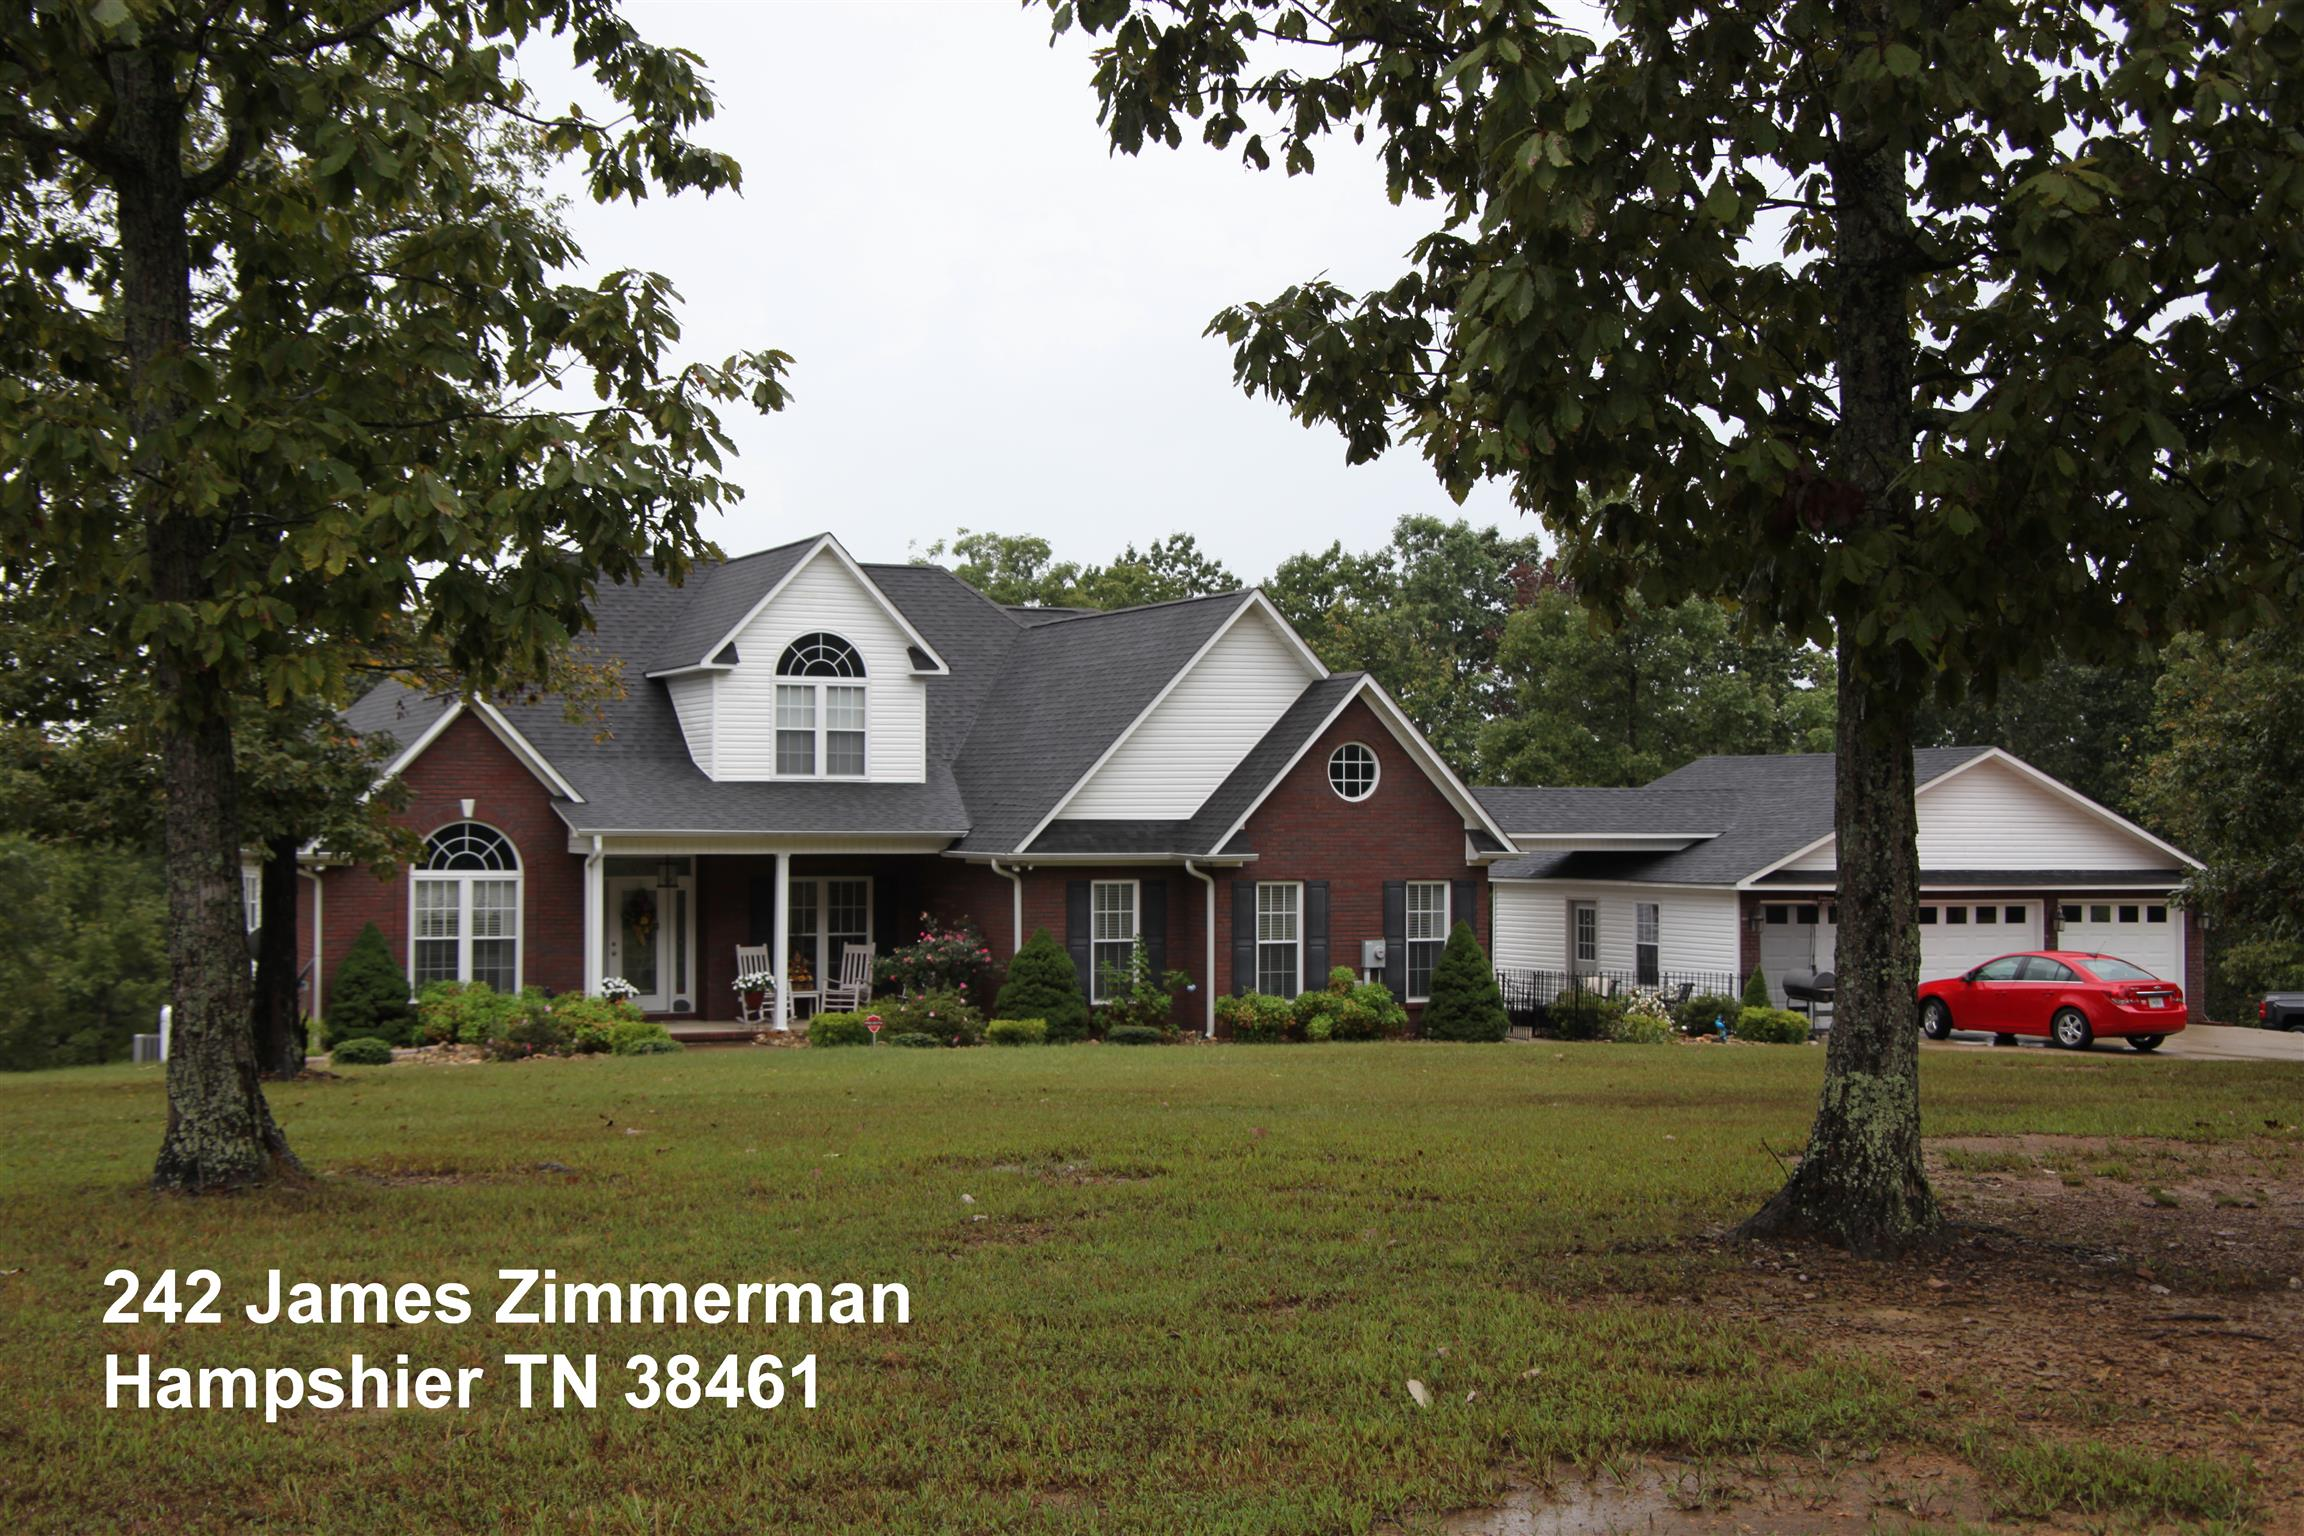 242 JAMES ZIMMERMAN RD Hampshire, TN 38461